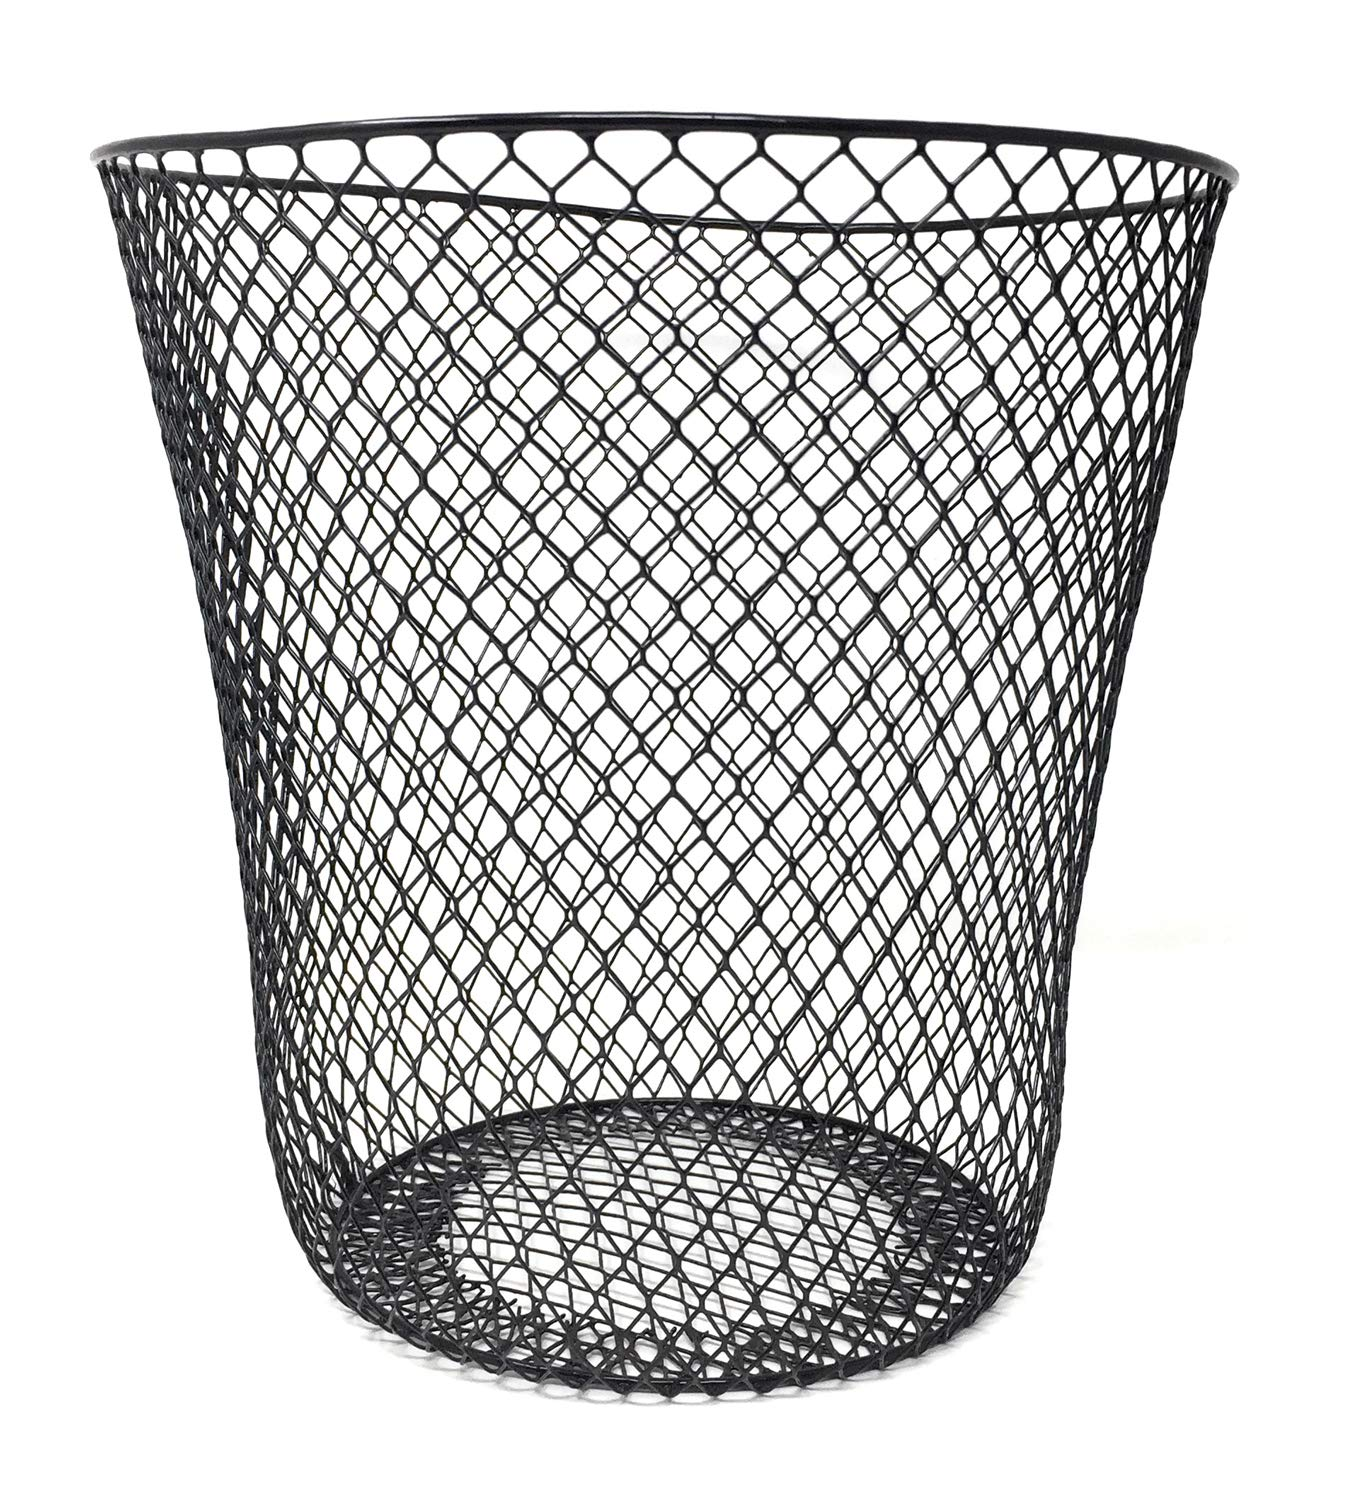 Essentials Wire Mesh Waste Basket Black Amazon Co Uk Business Industry Science